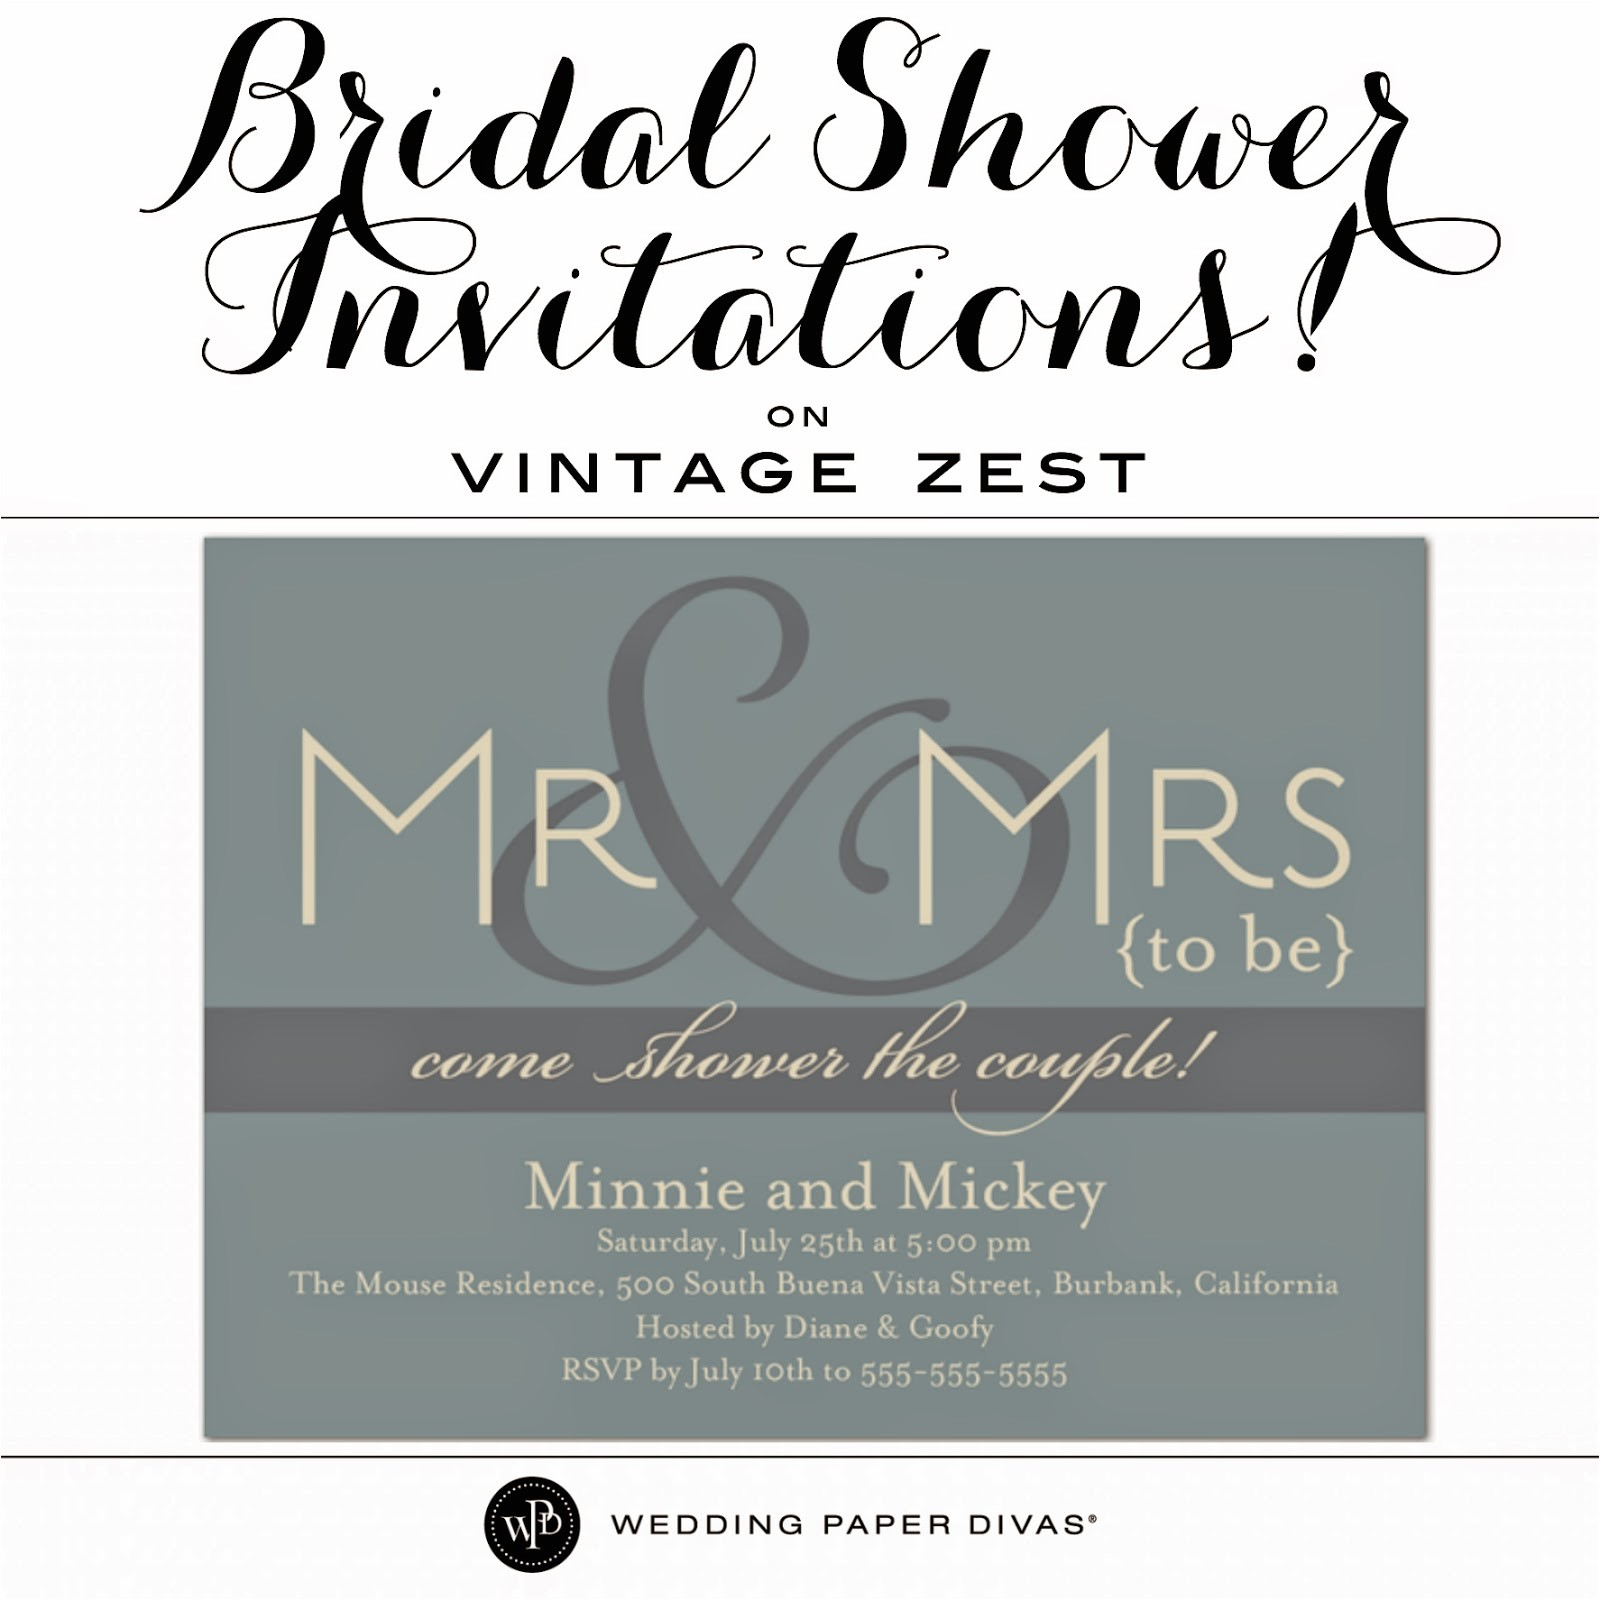 bridal shower invitations with wedding